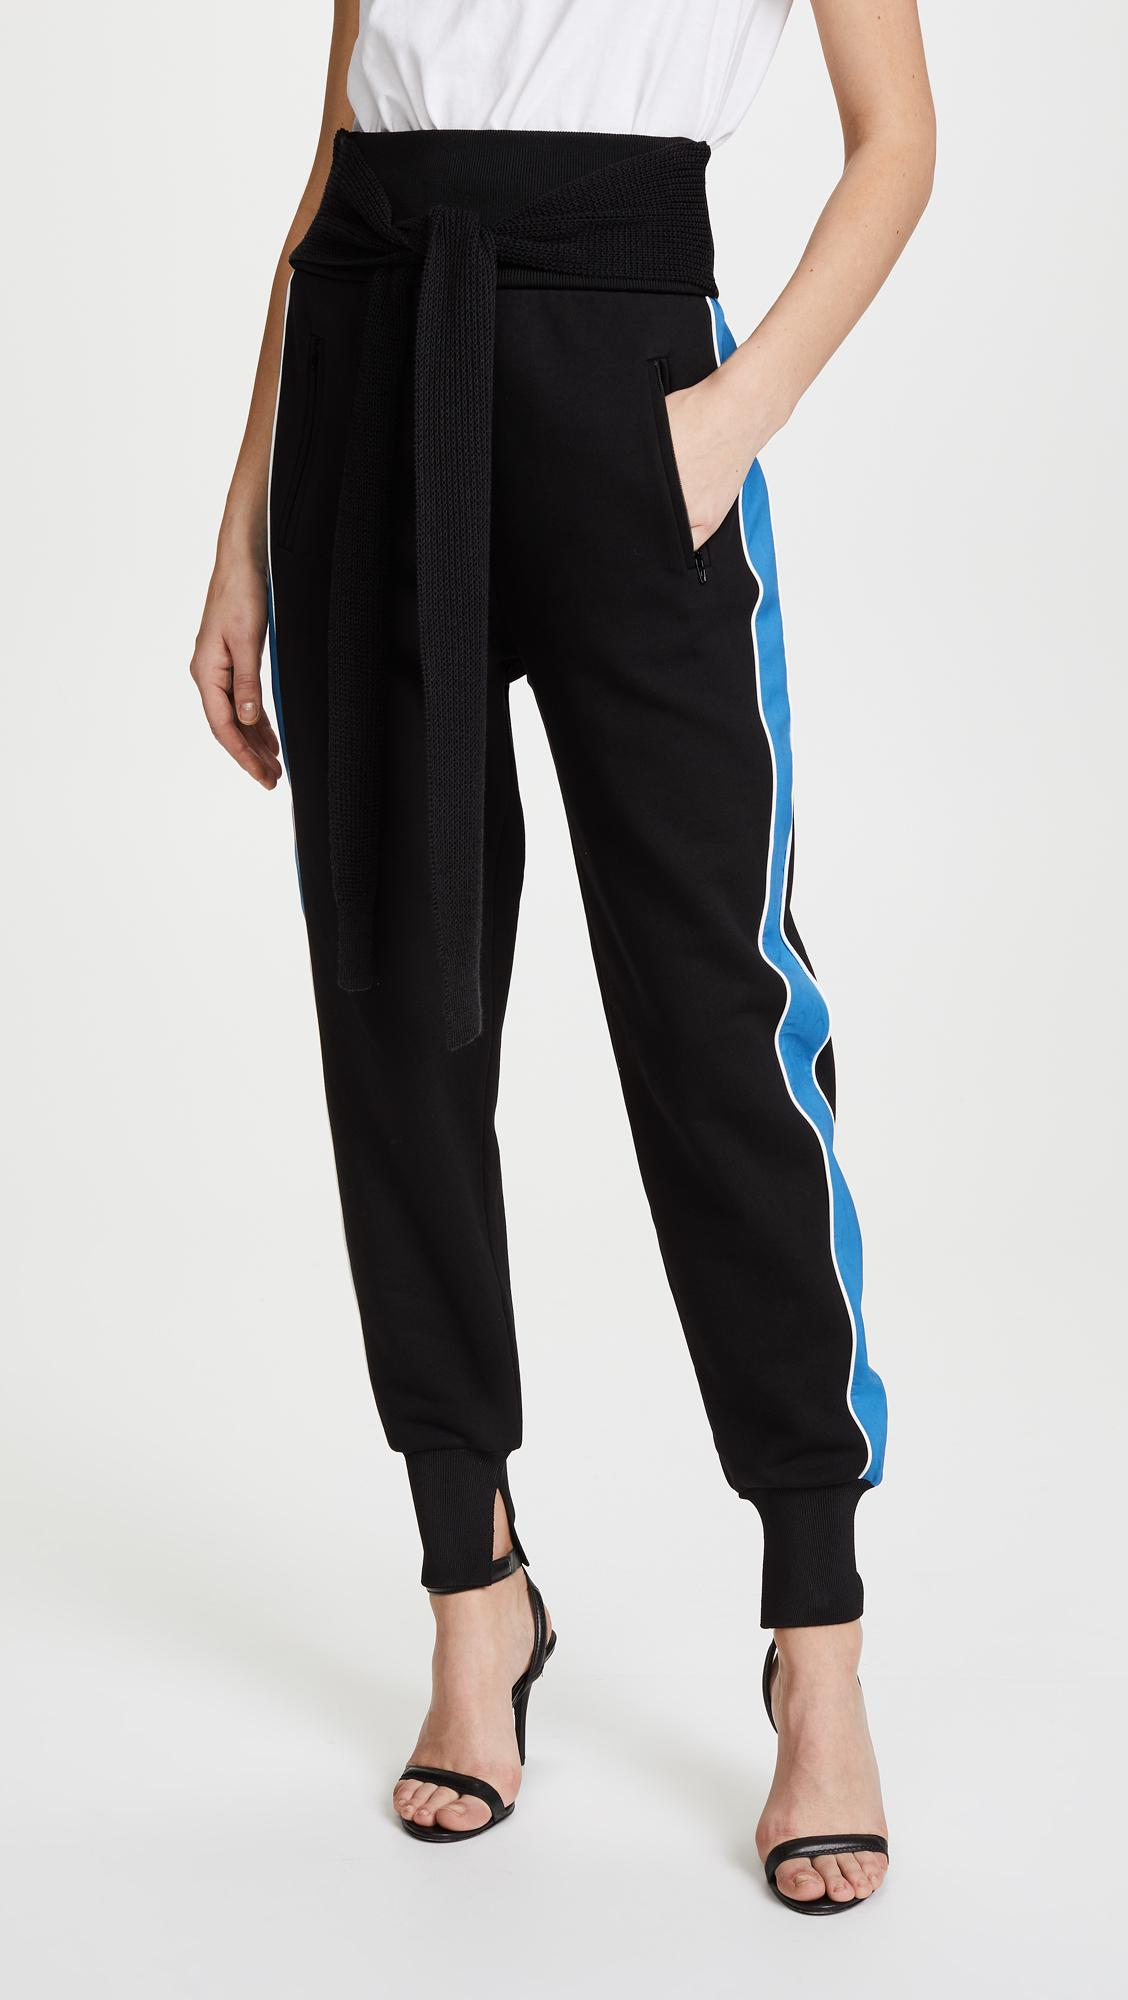 Lyst - 3.1 Phillip Lim Jogger Pants With Tie in Black